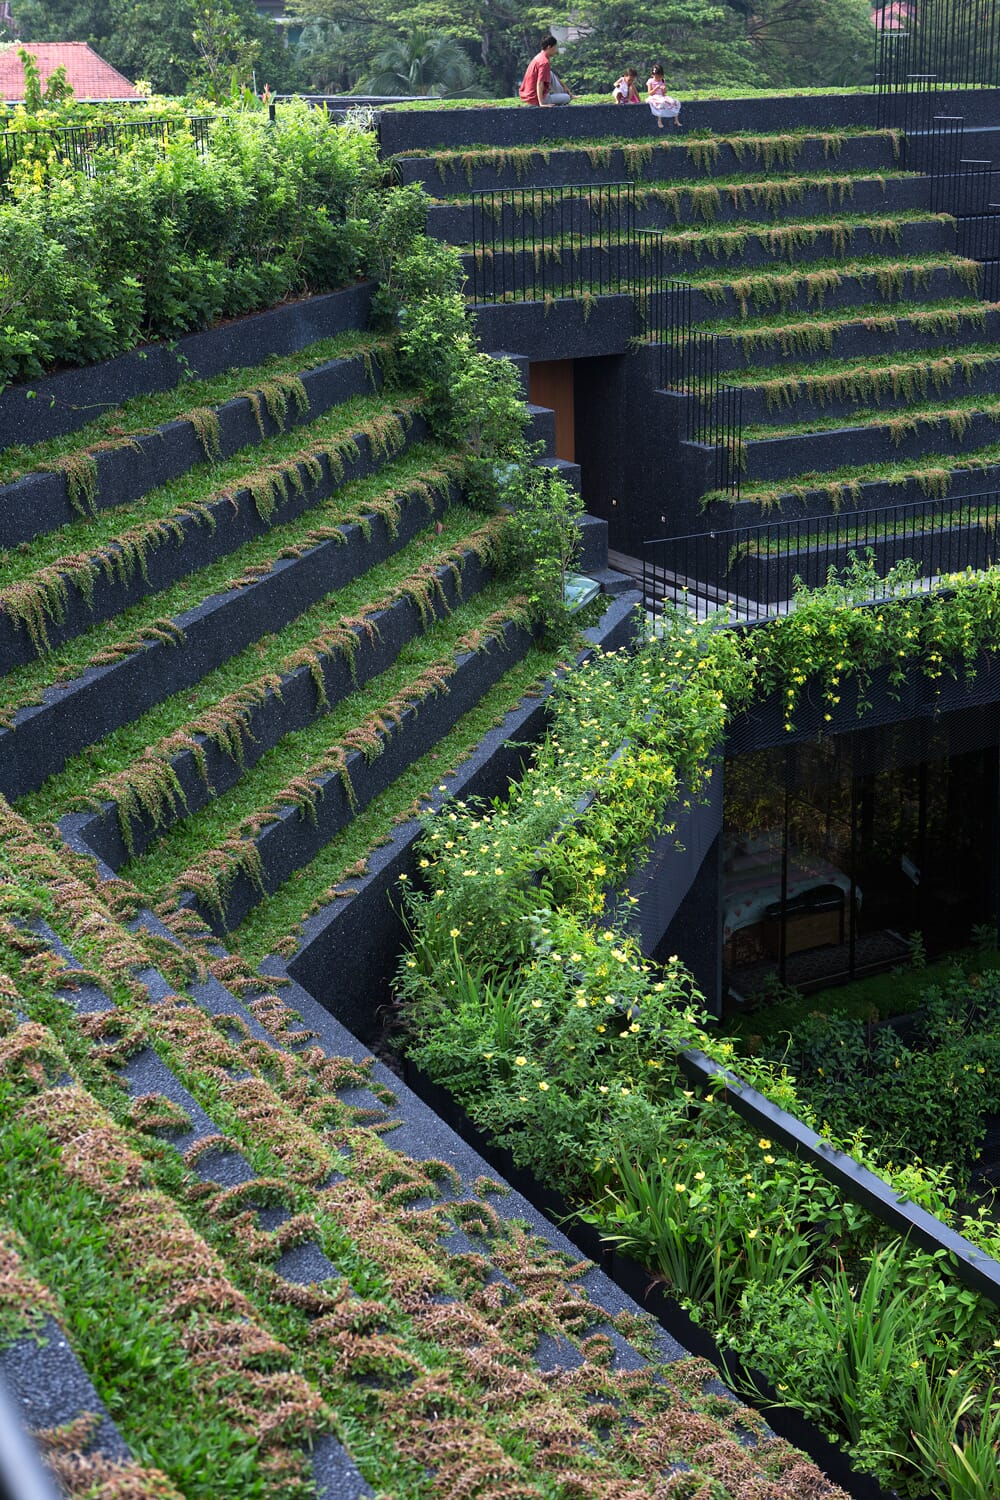 21.-View-of-the-terraced-roof-garden.